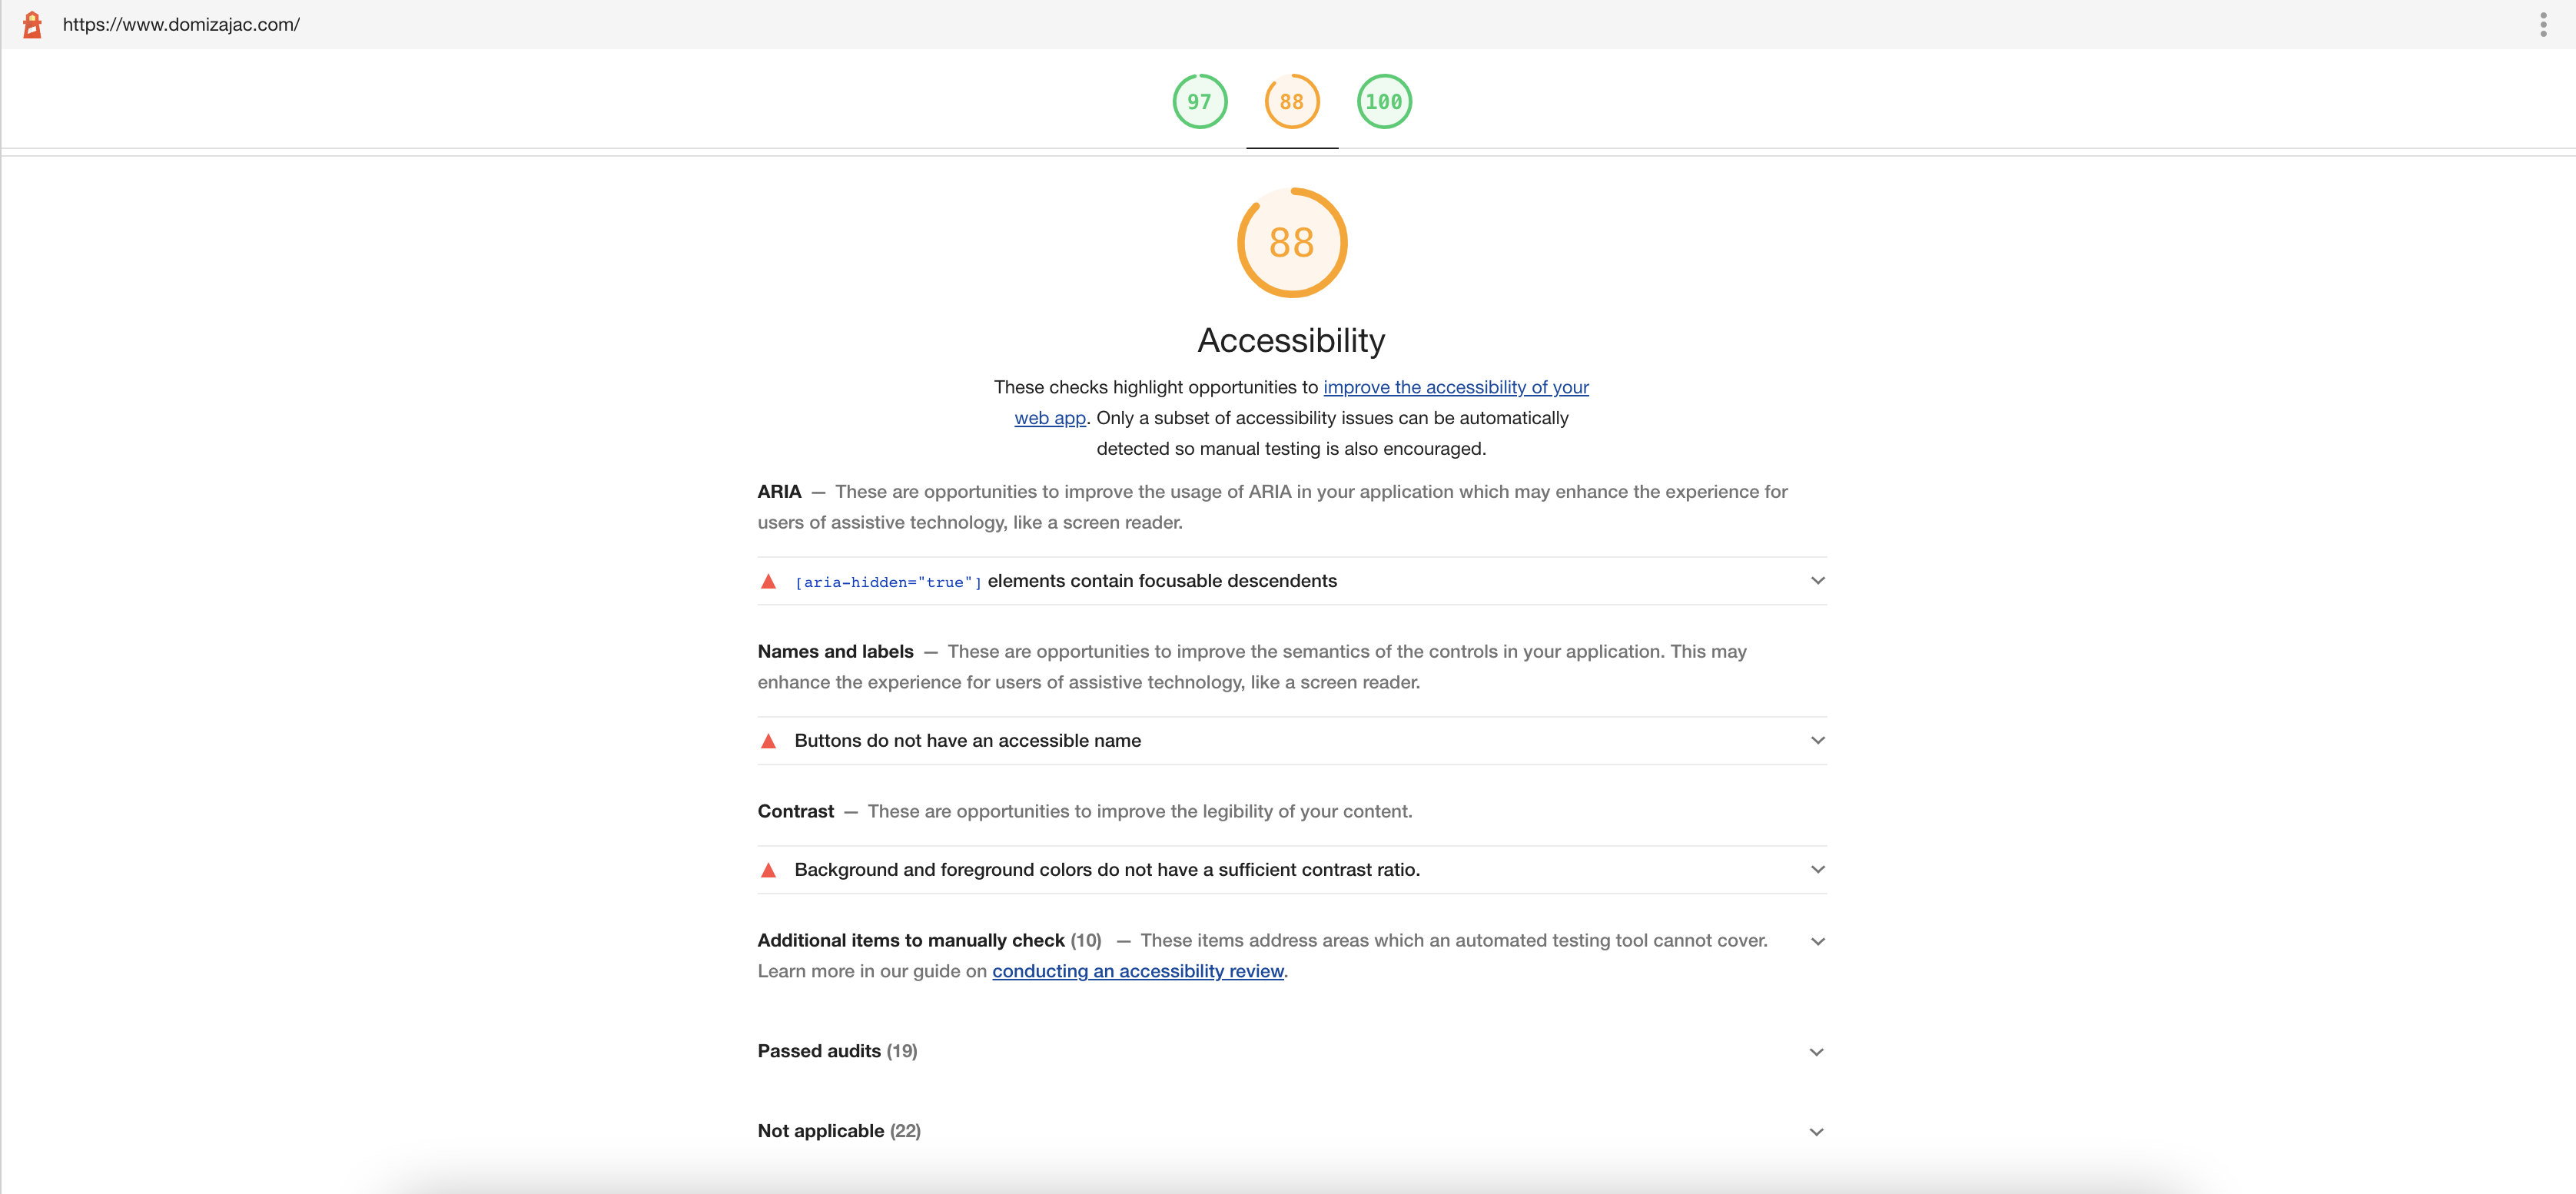 Report of the accessibility test—orange 86 score, expandable list of failing elements and list of passed audits.